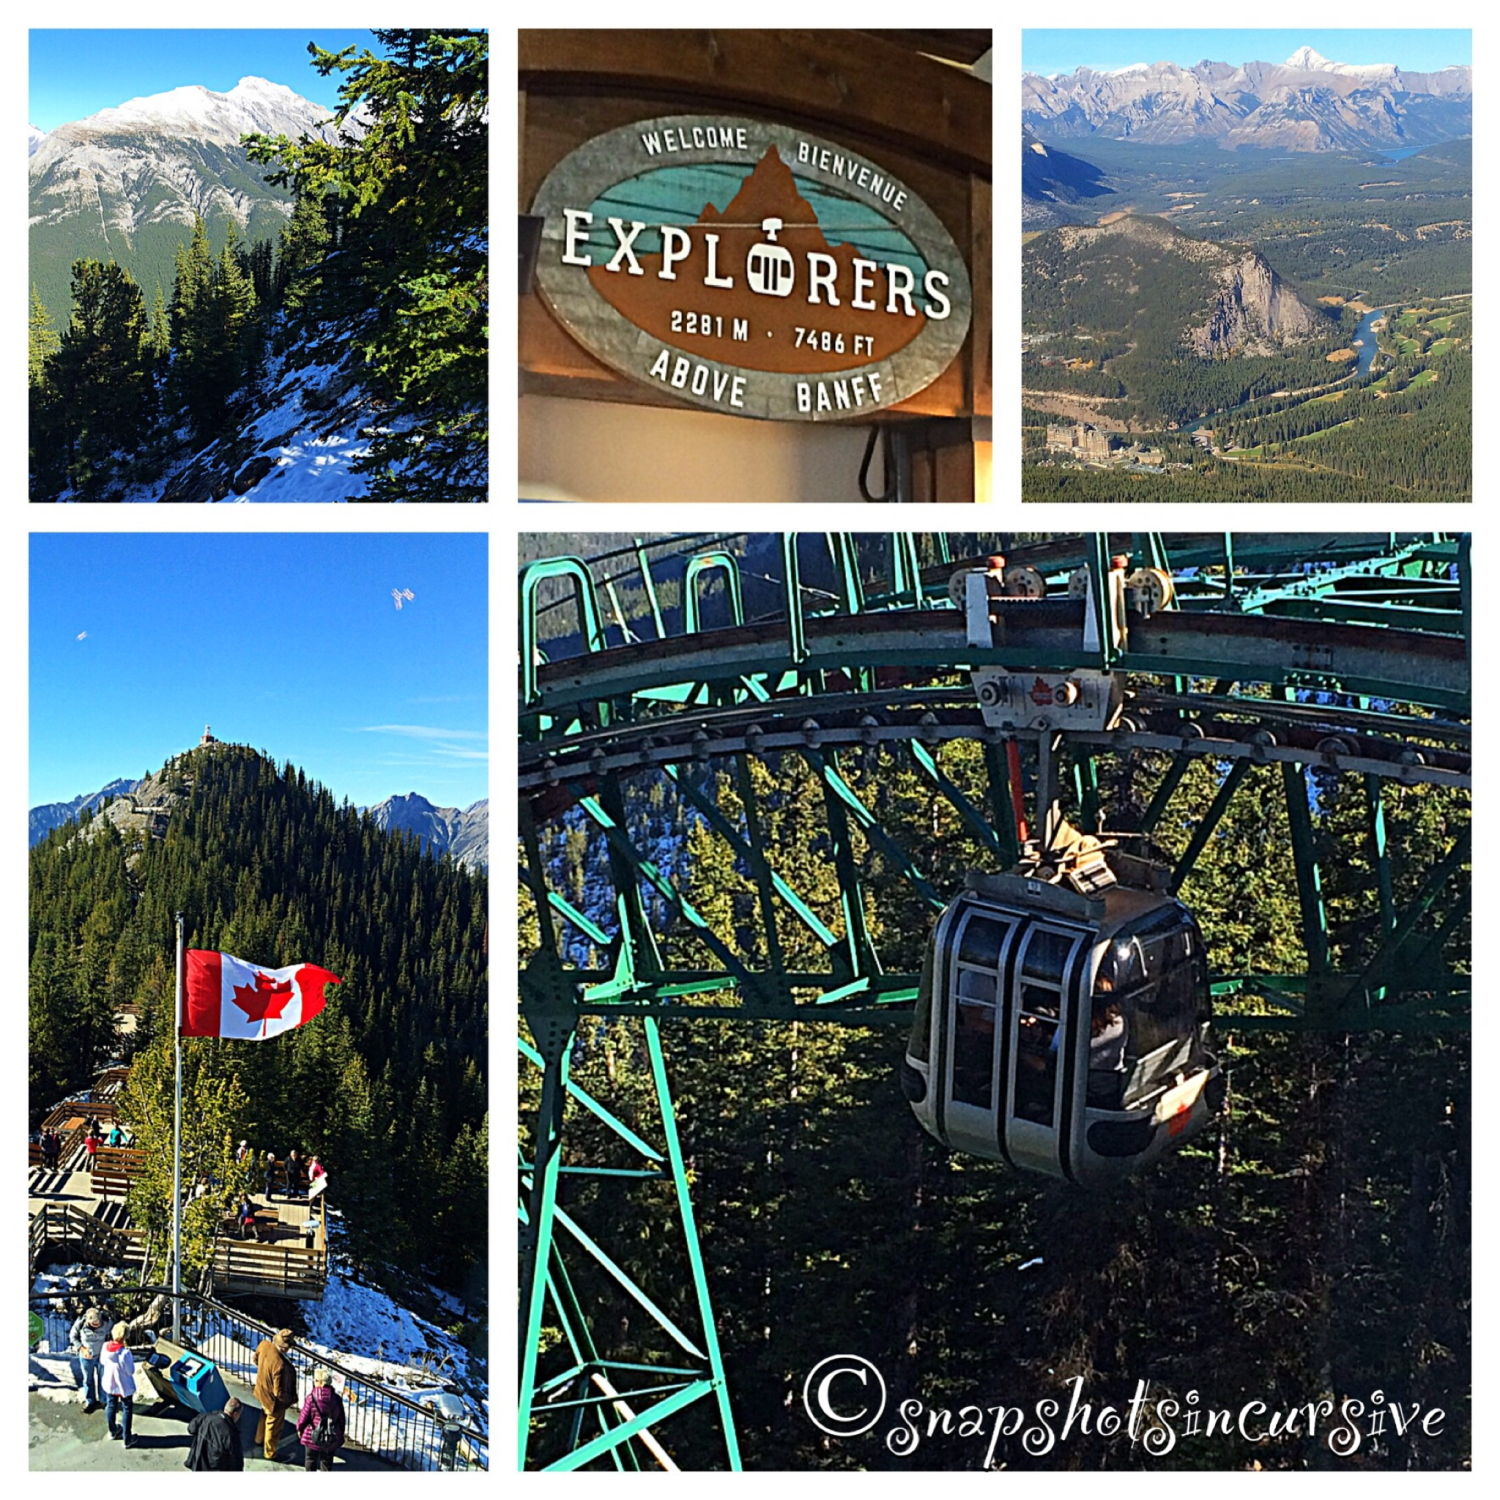 Soar to the Summit of Sulphur Mountain in Banff, Canada